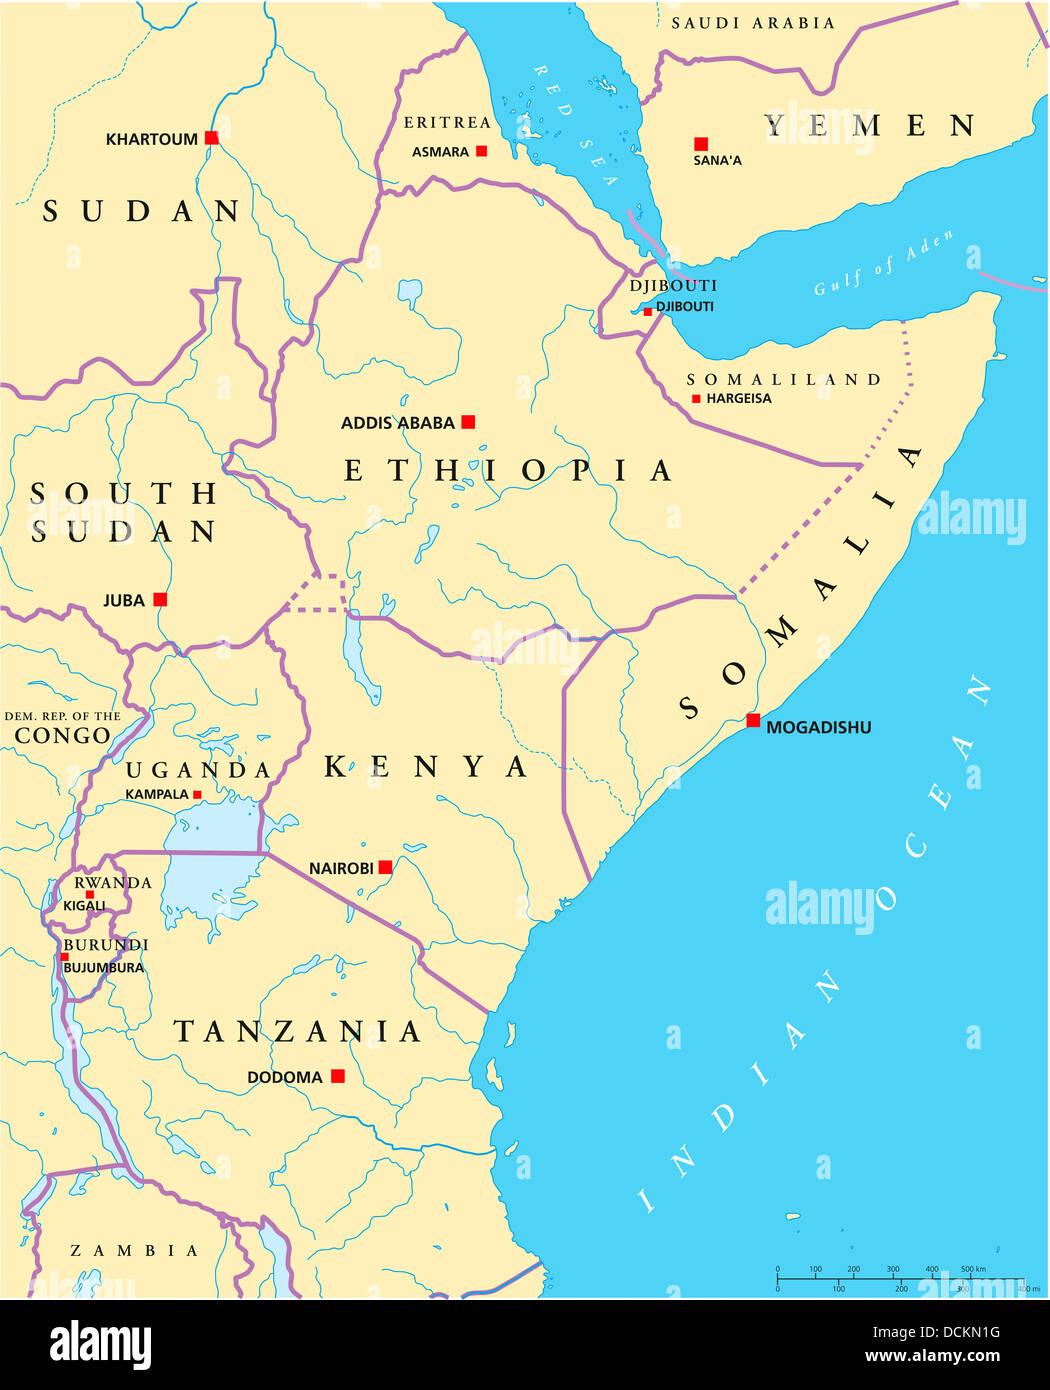 East Africa Political Map Stock Photo Royalty Free Image - Map of eastern africa